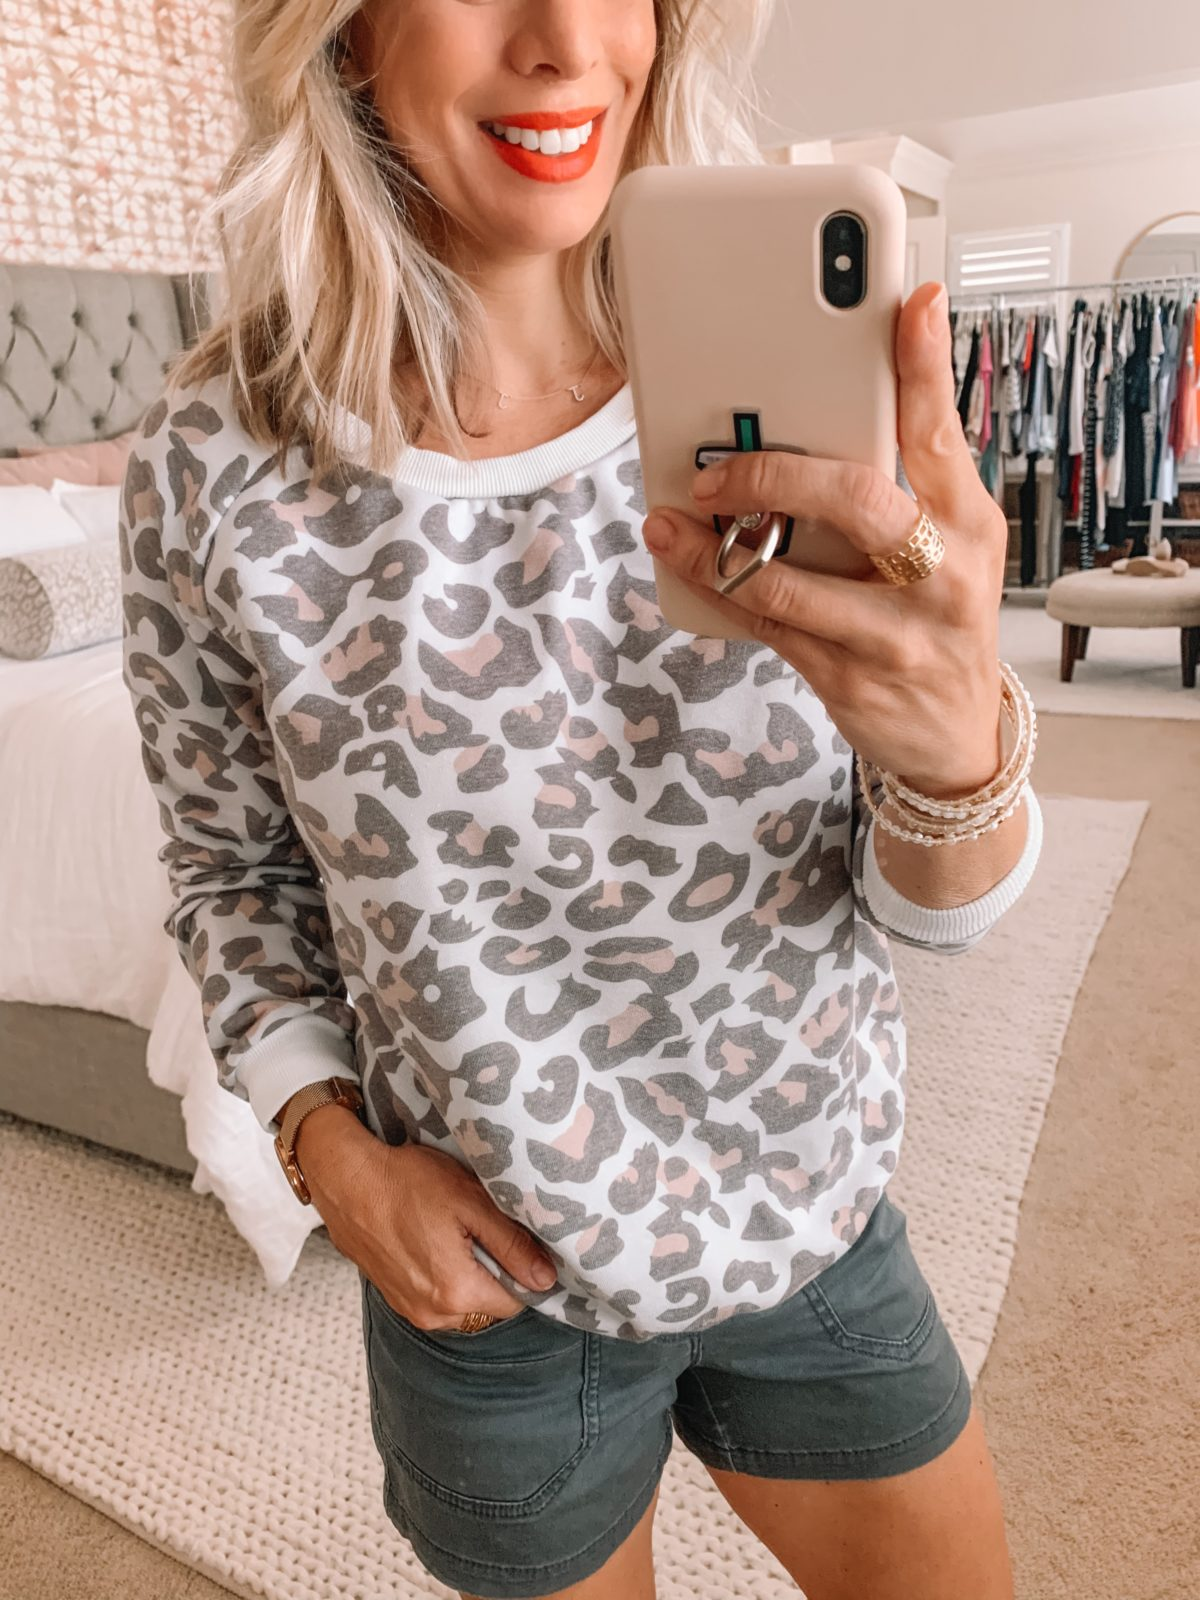 Amazon Fashion Finds, Leopard Sweatshirt, Board Shorts